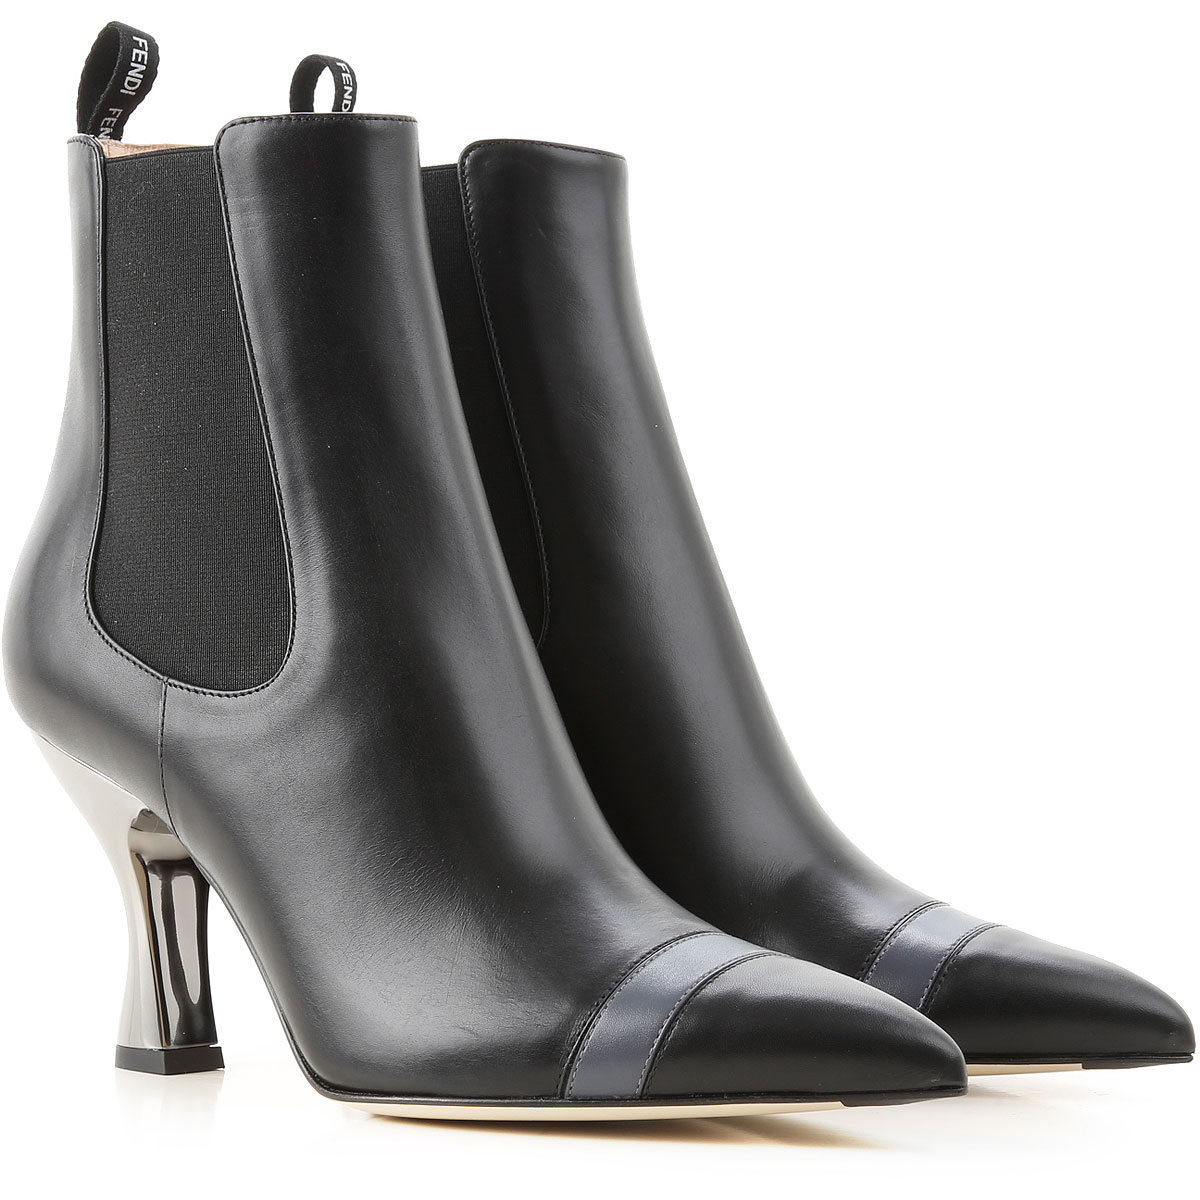 Fendi Boots for Women, Booties On Sale, Black, Leather, 2019, 10 5 5.5 6 6.5 7 8 8.5 9